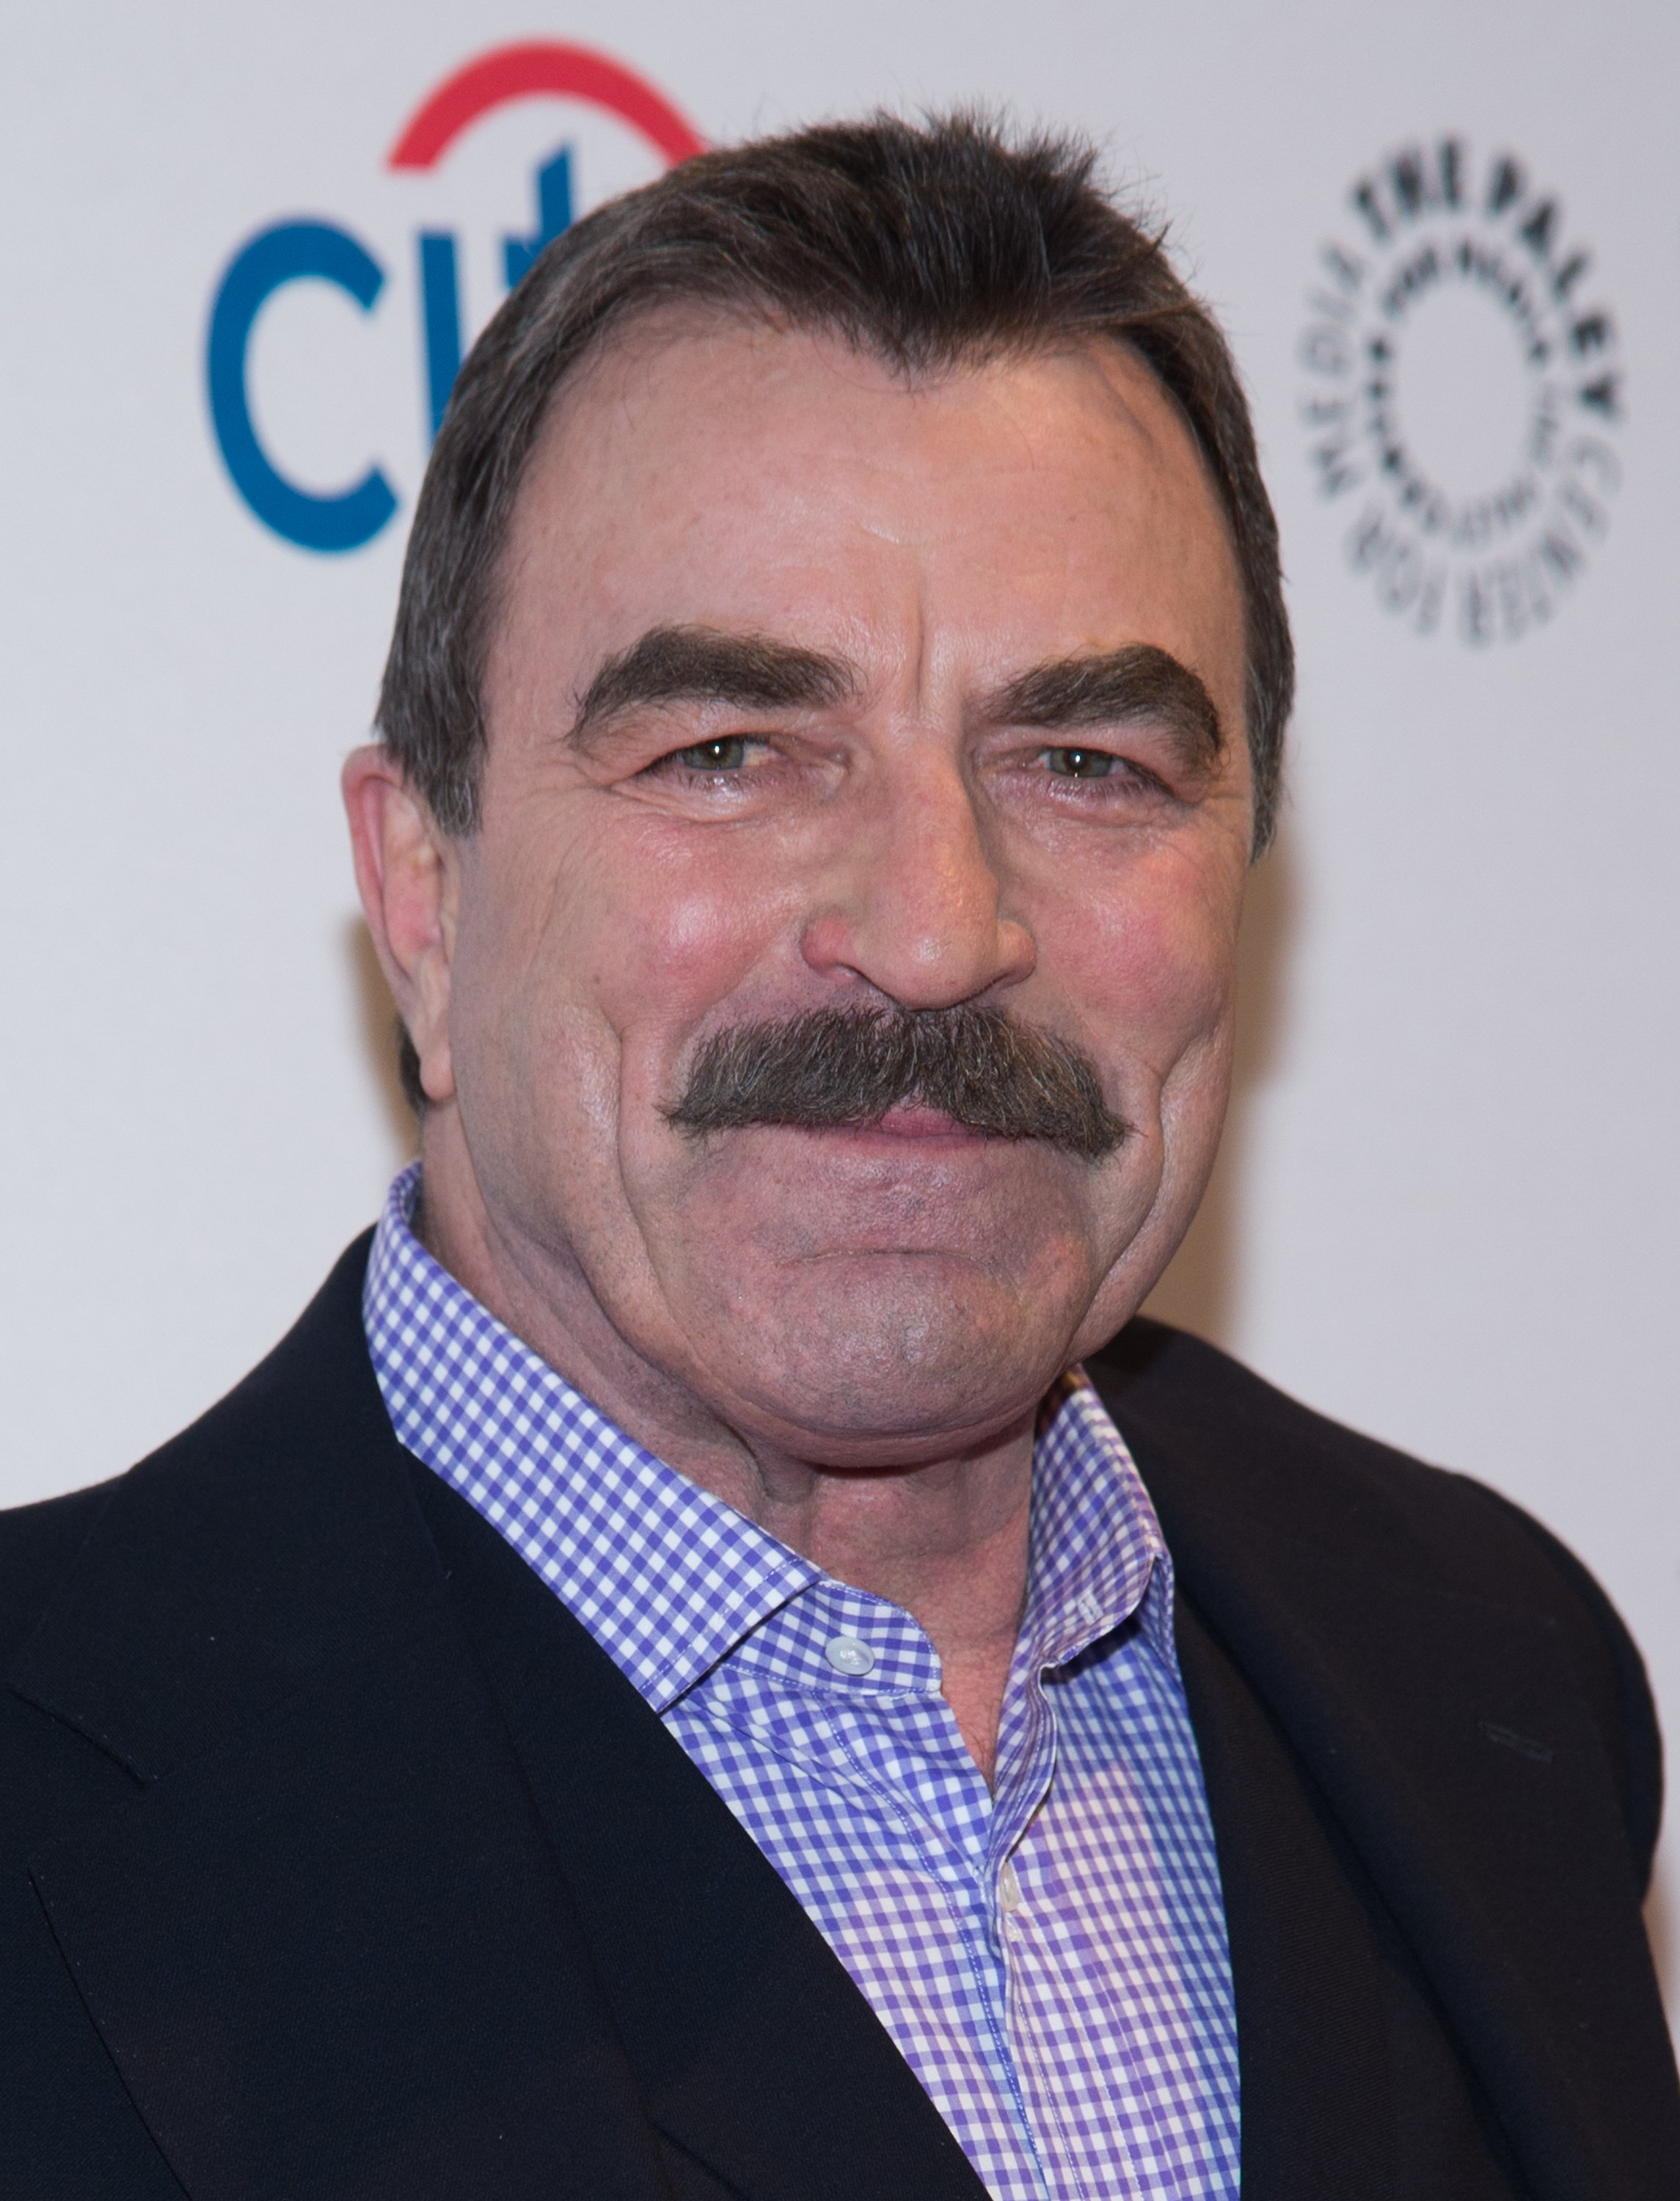 """Tom Selleck attends the 2nd Annual Paleyfest of """"Blue Bloods"""" in New York on October 18, 2014 